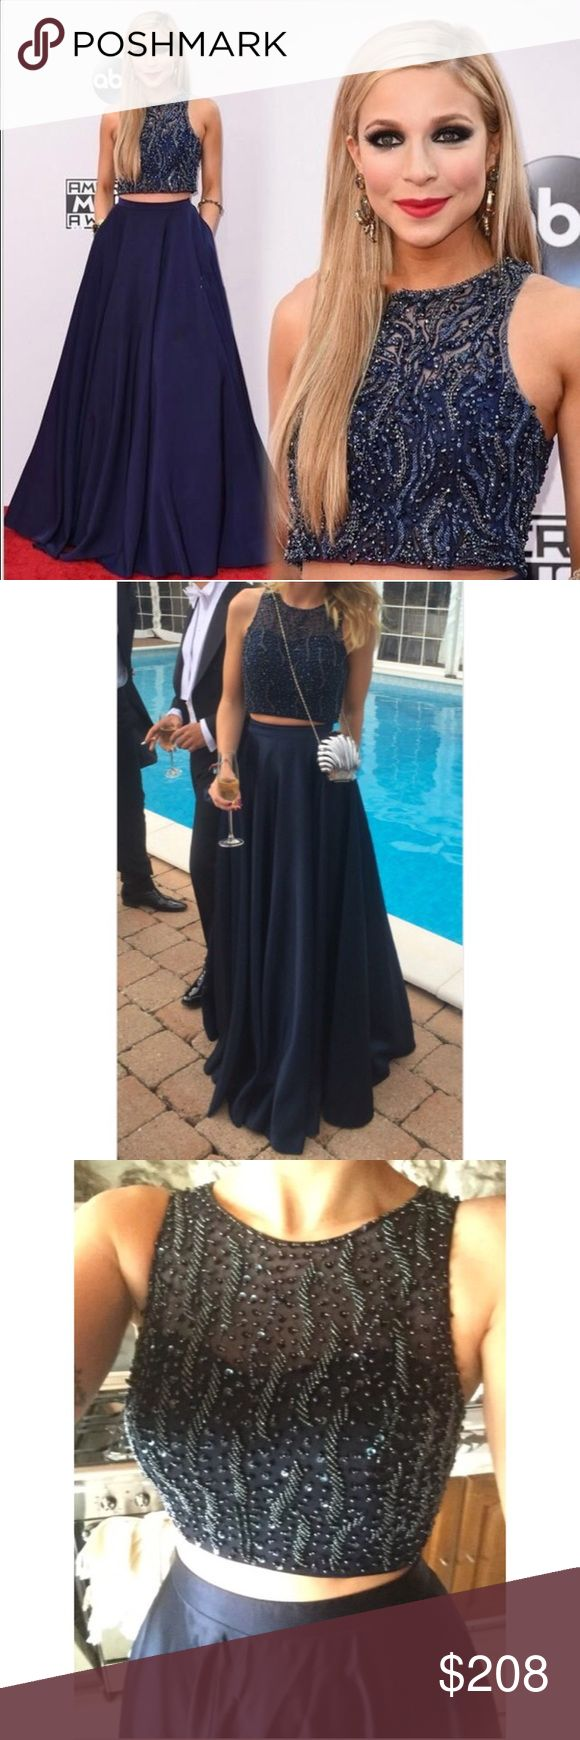 RED CARPET 2-piece Prom Dress Evening Formal Gown As seen on ABC Red Carpet on Miss America!! (Kira Kazantsev, Miss America 2015) Gorgeous navy dress for prom or any formal occasion! Dresses Prom